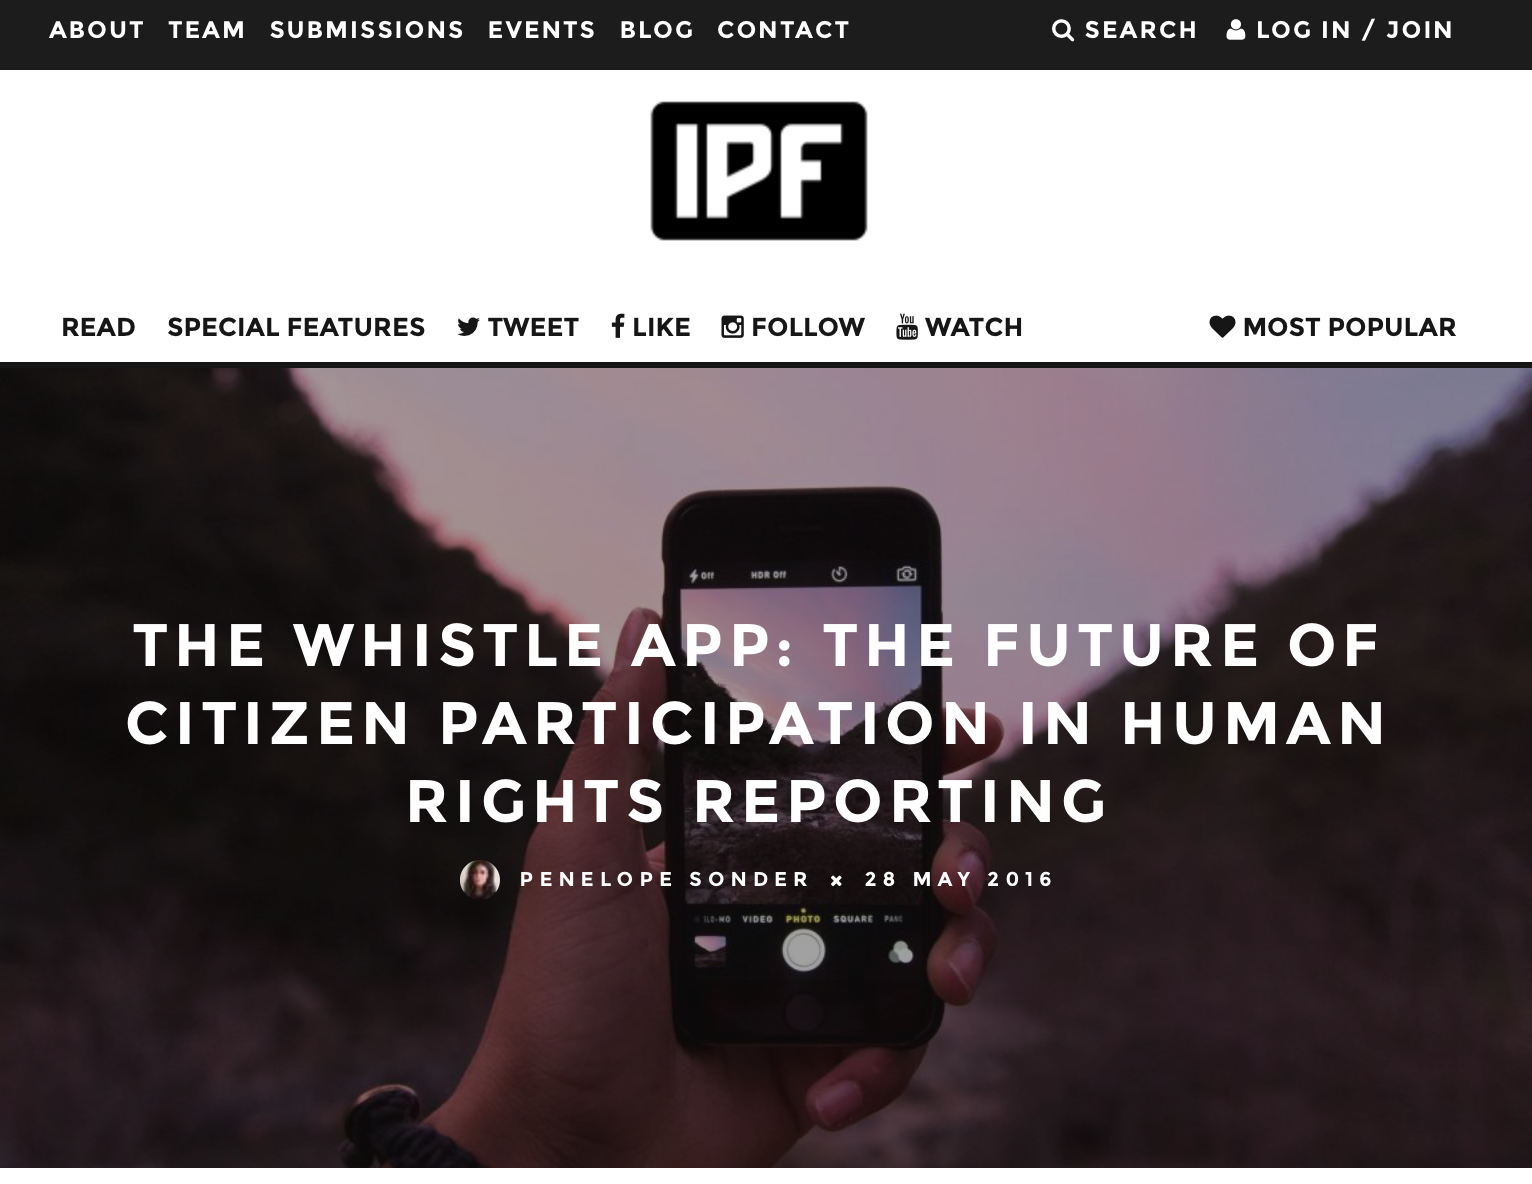 The Whistle featured in IPF article